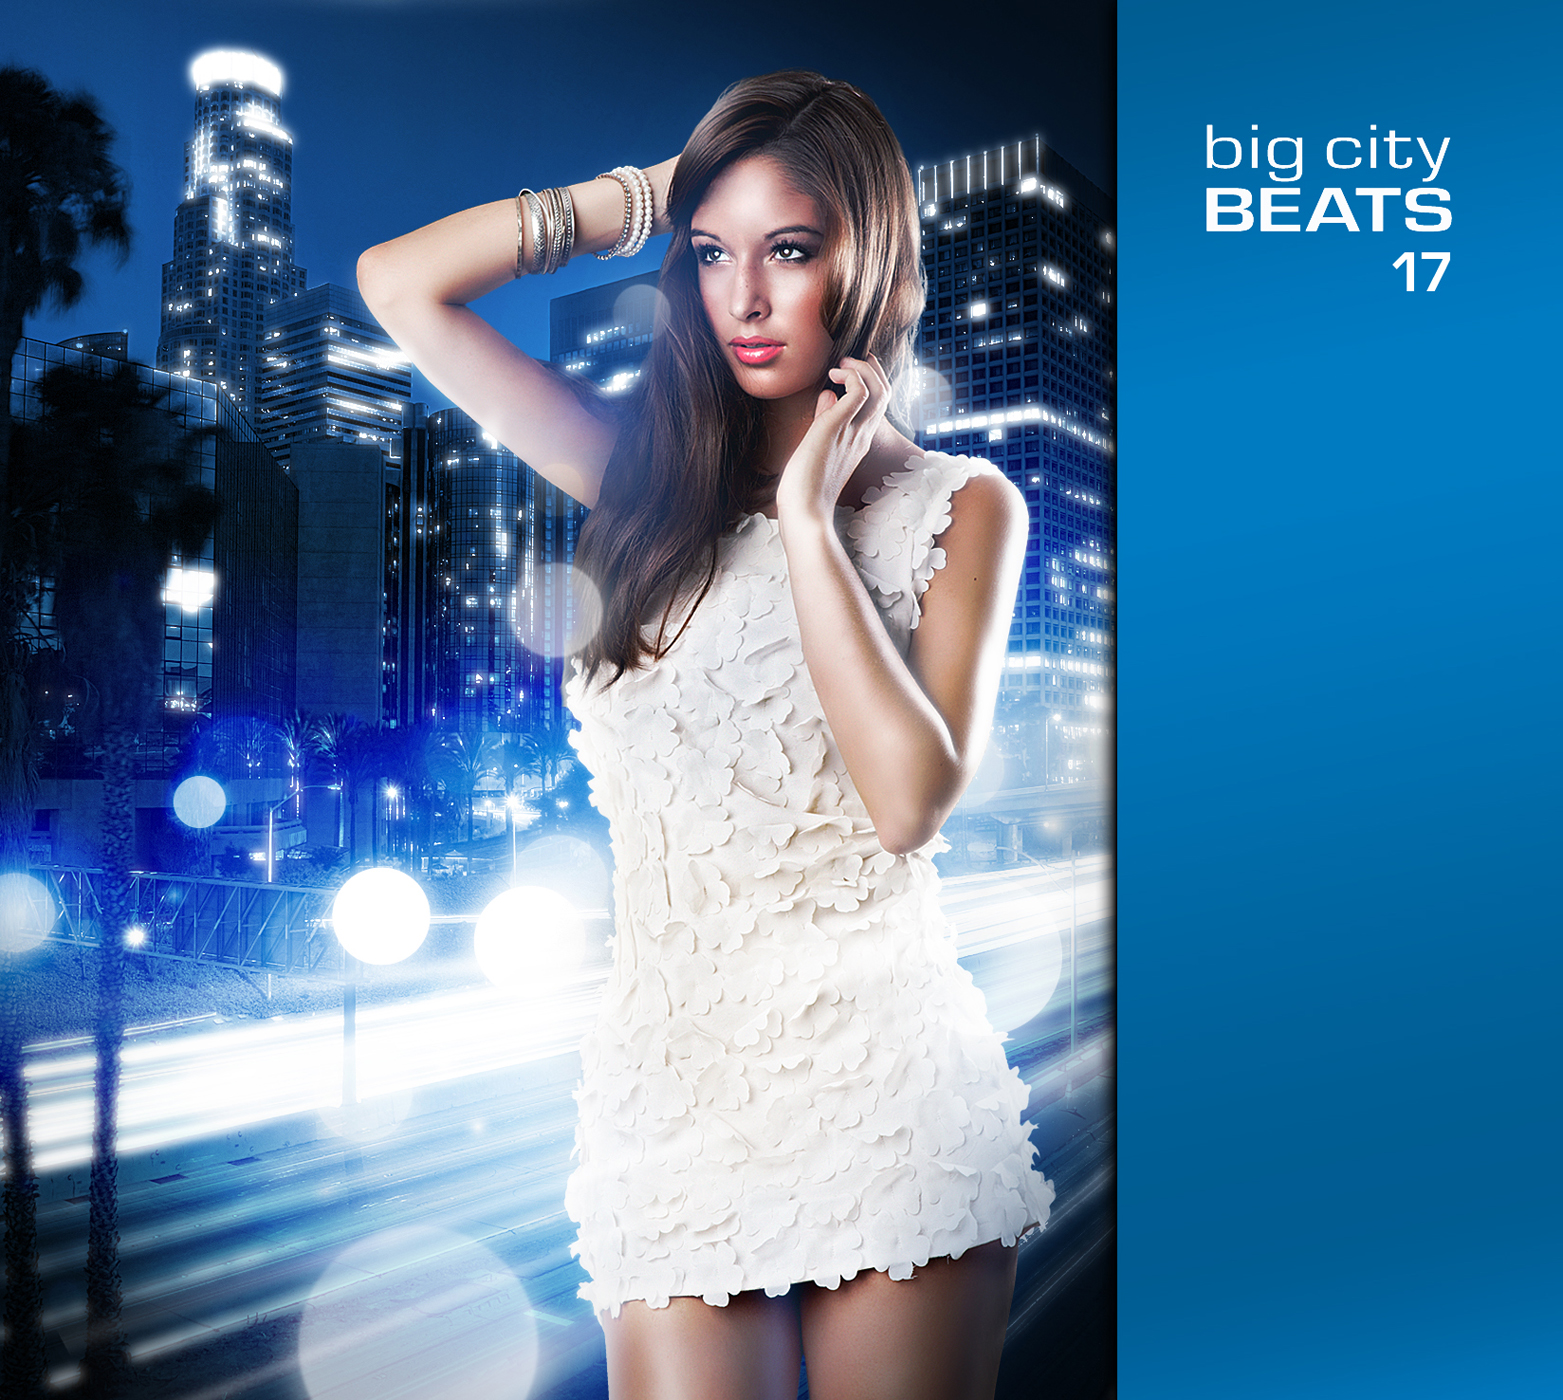 Big City Beats Vol. 17 erscheint am 5. Oktober